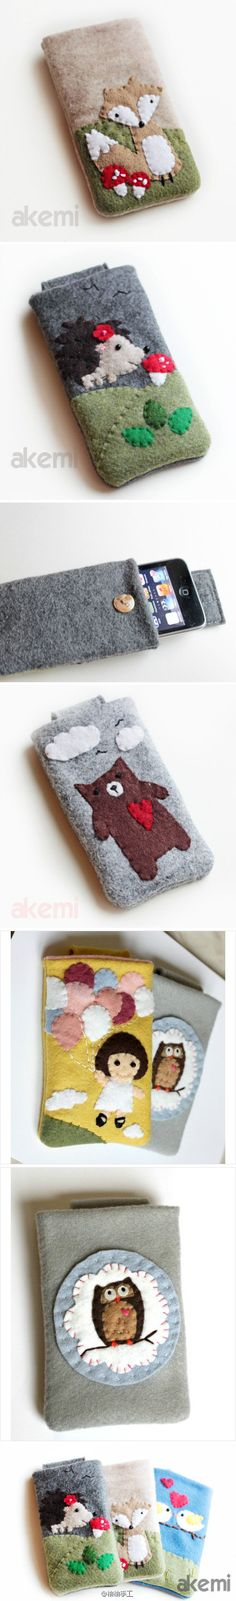 Cute felt patch iphone sets - would make cute eyeglass cases; size might need to be adjusted